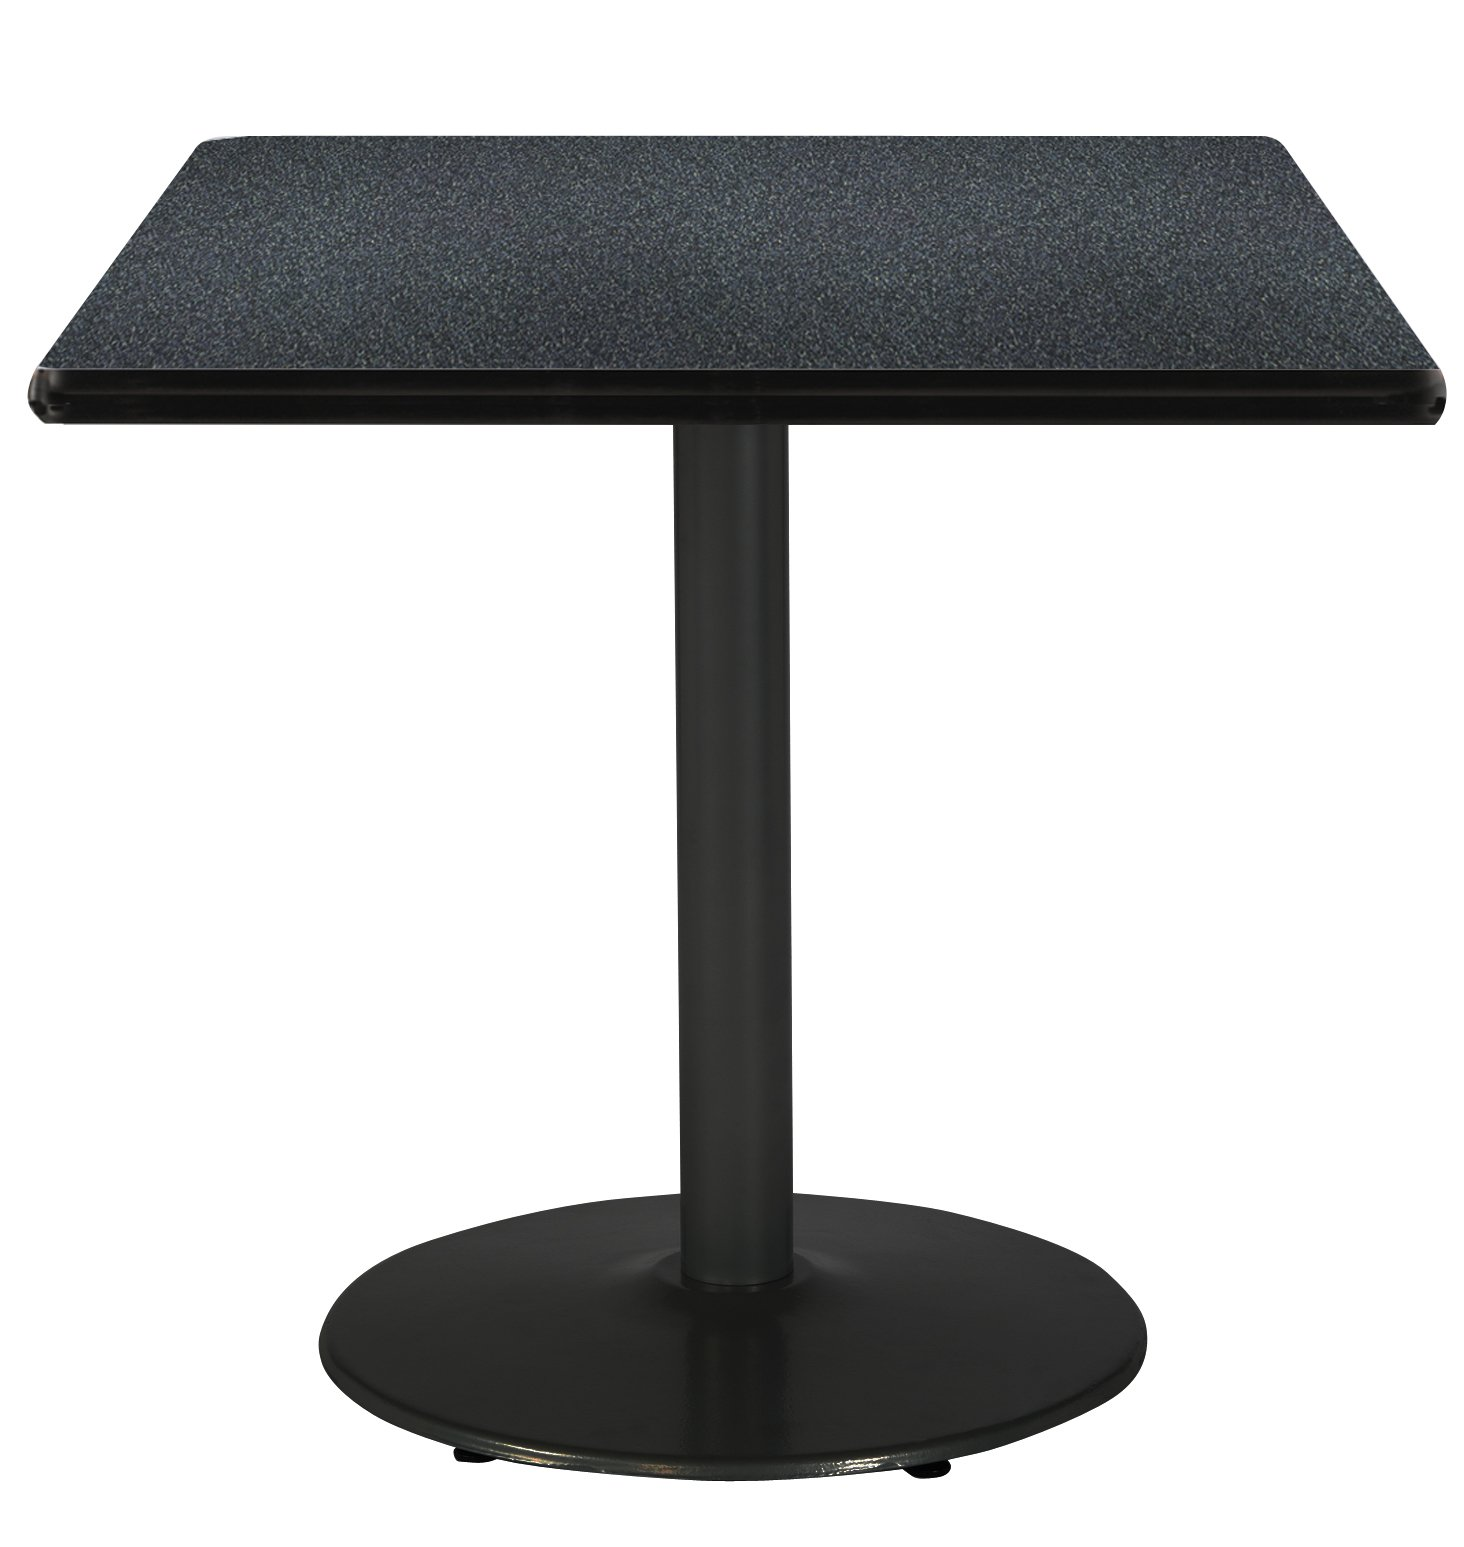 36'' Square Pedestal Table with Graphite Nebula Top, Round Black Base